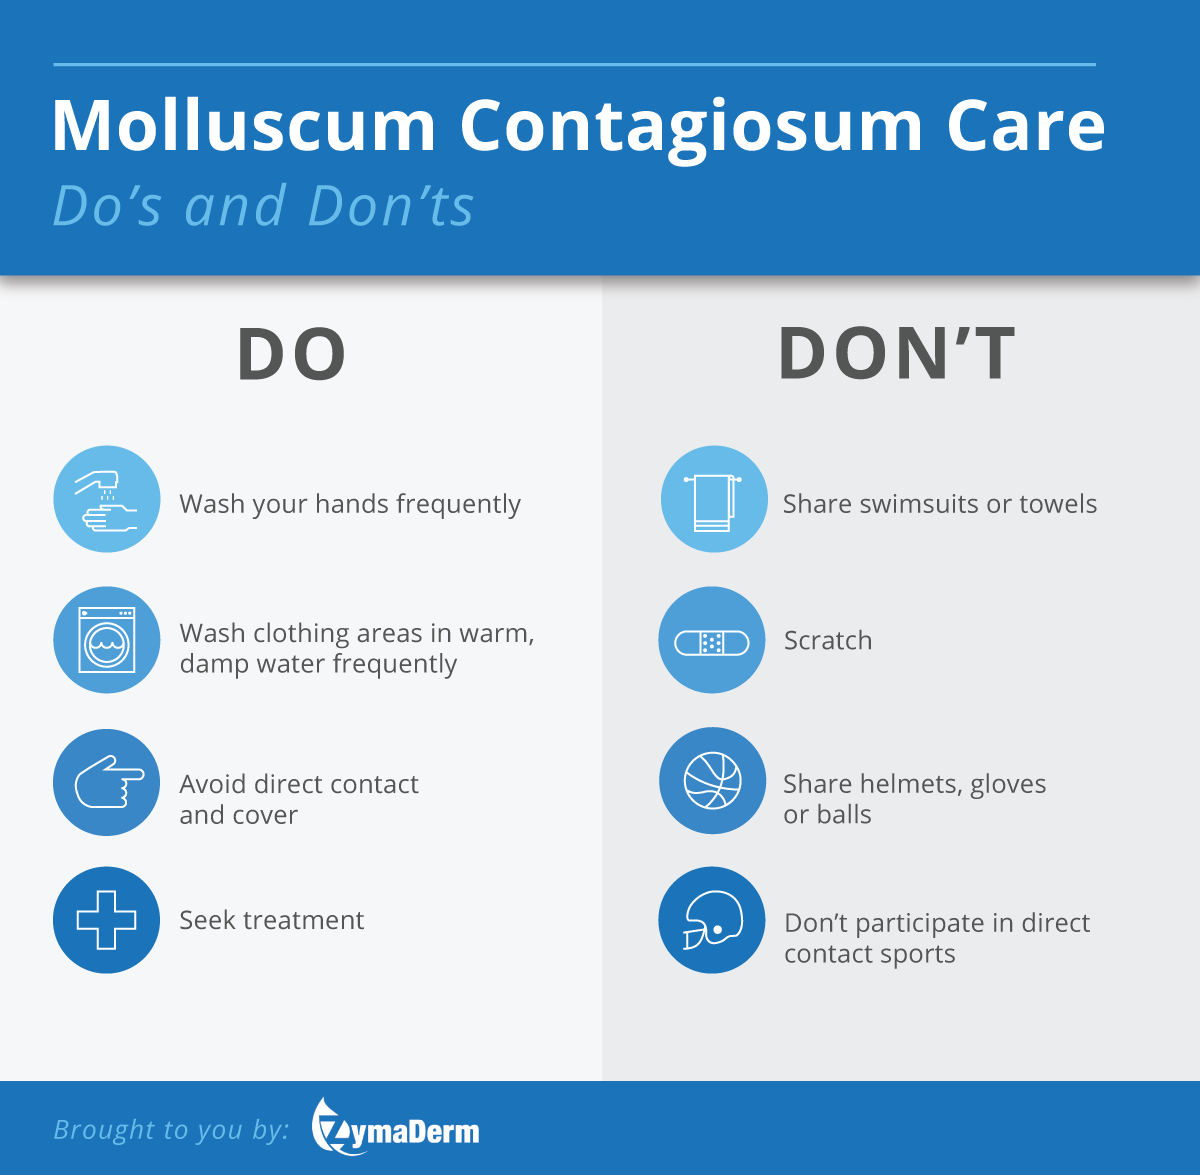 Dos & Don'ts of Molluscum Contagiosum Care